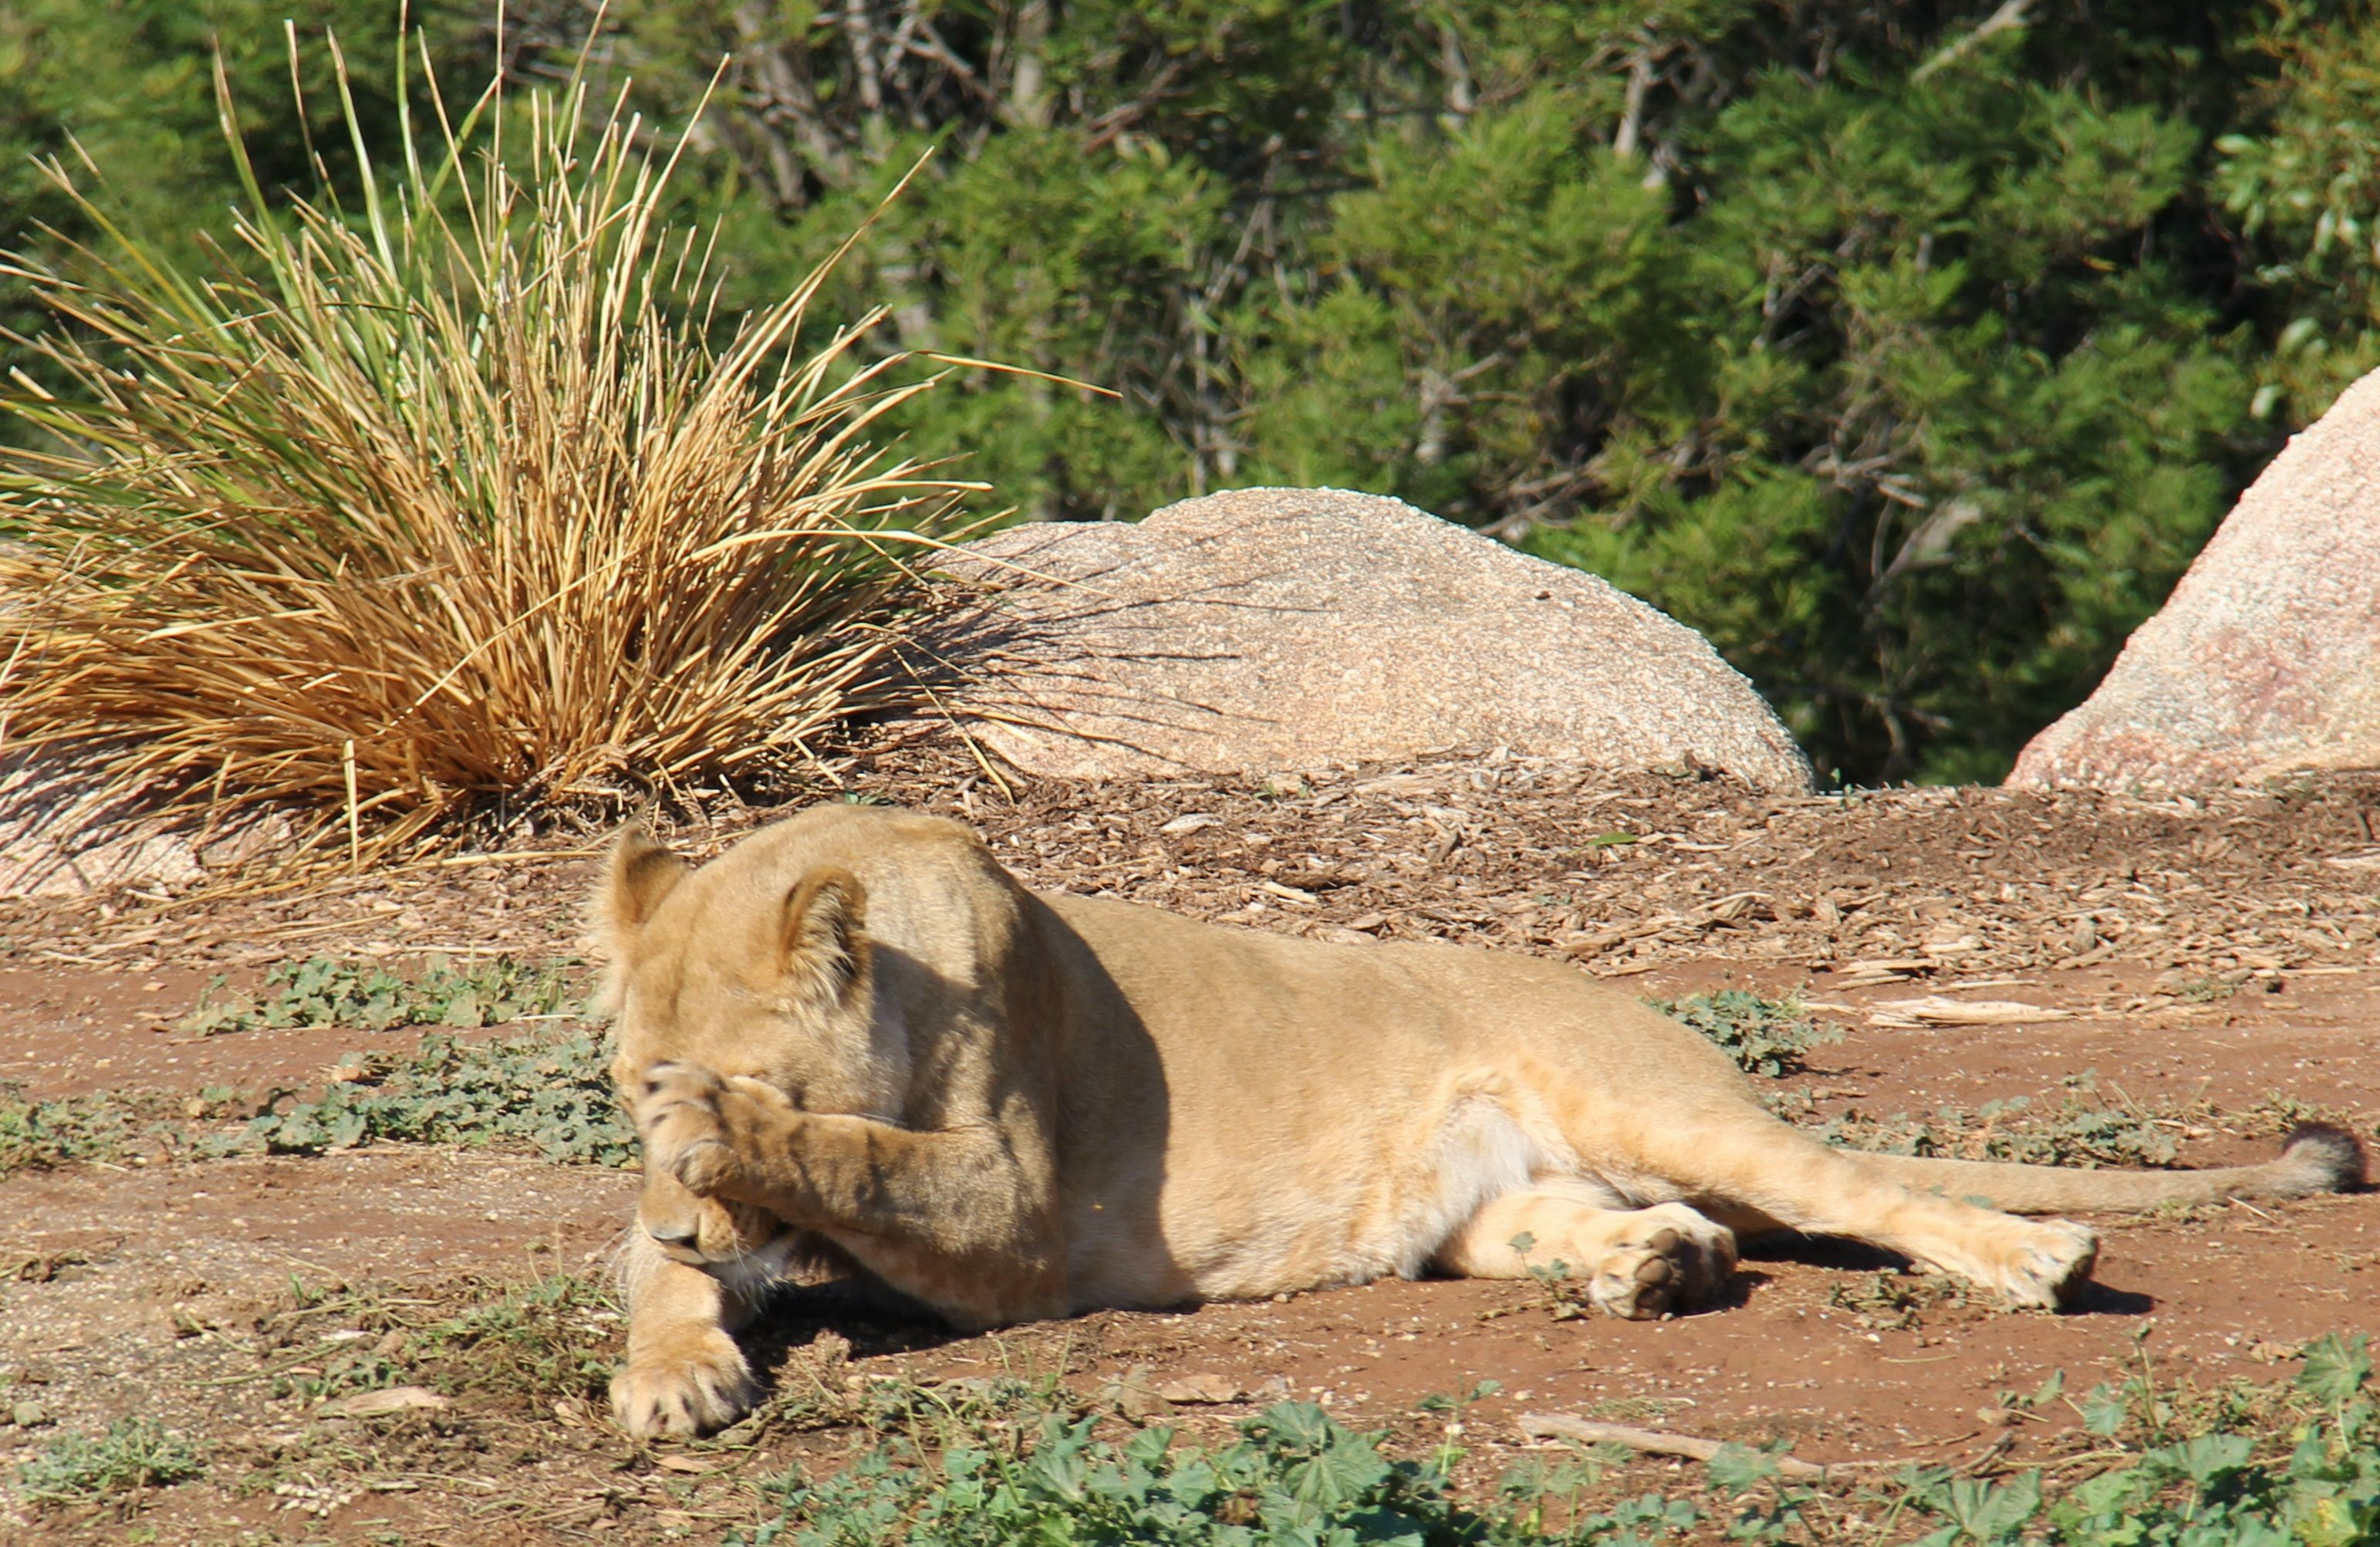 Wake me up when it's Friday! Lioness Niribi at Werribee Open Range Zoo takes a well deserved nap in the sunshine